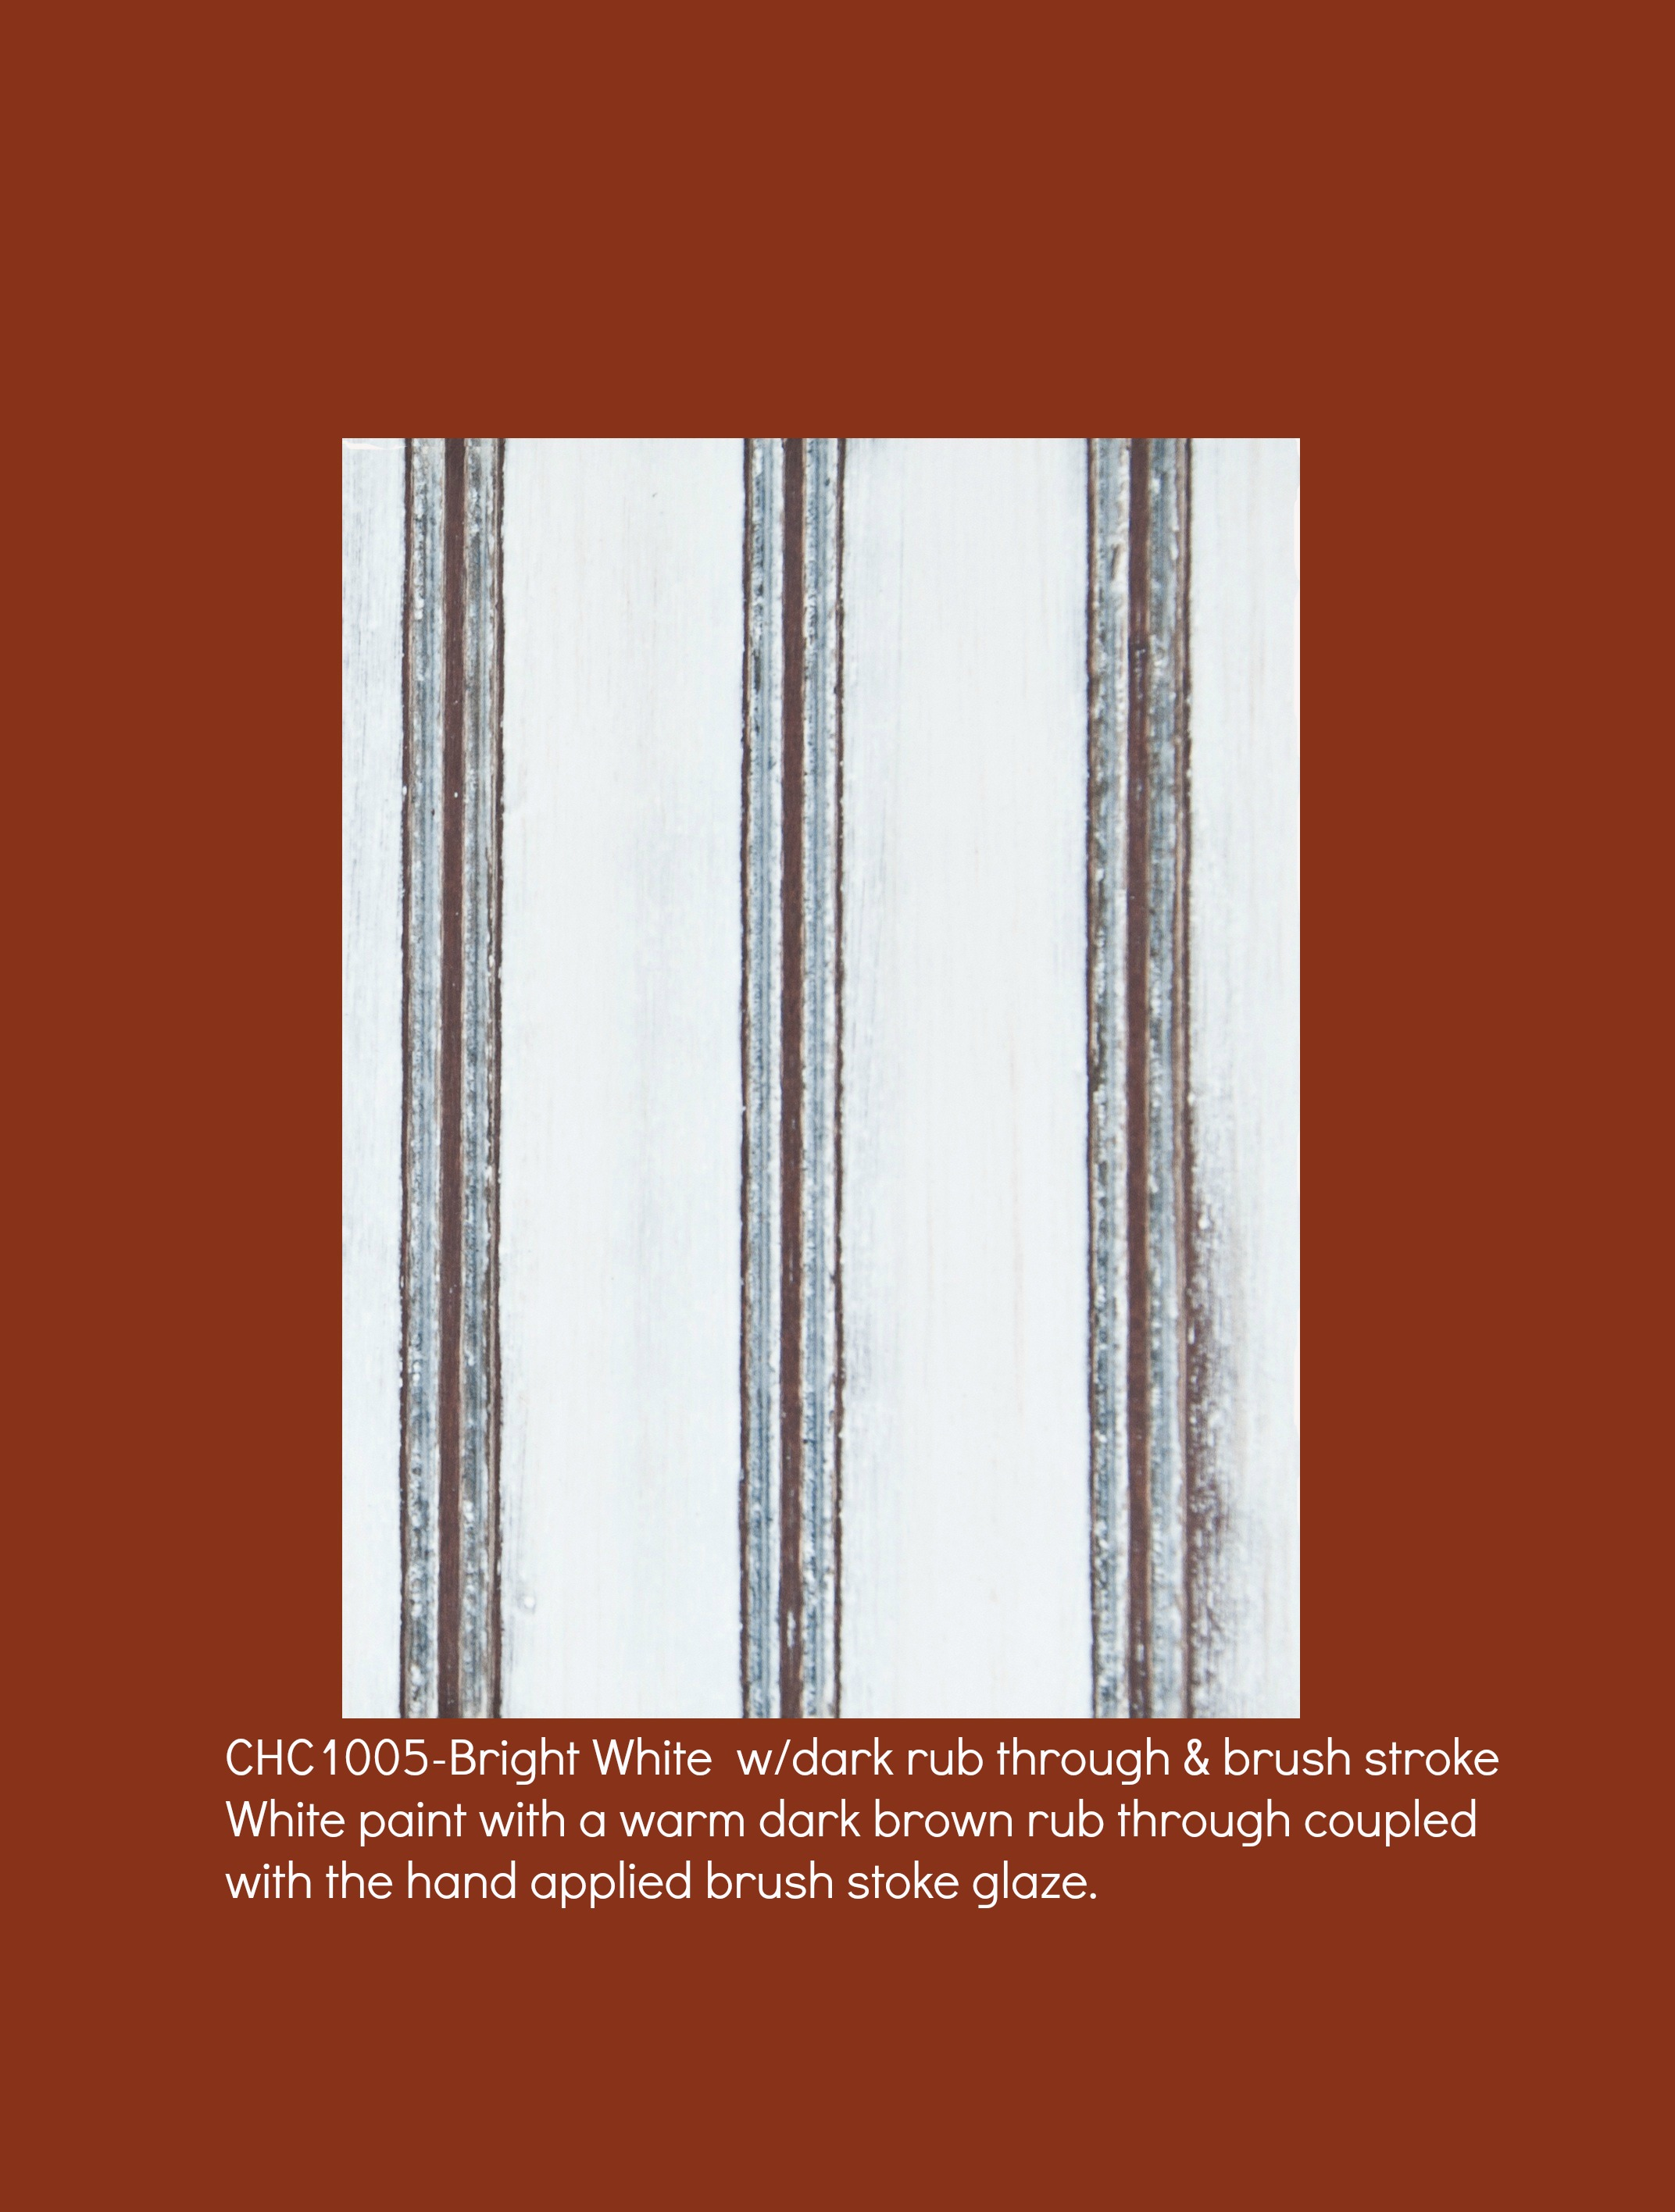 Bright White1005-White paint with a warm dark brown rub through coupled with the hand applied brush stroke glaze